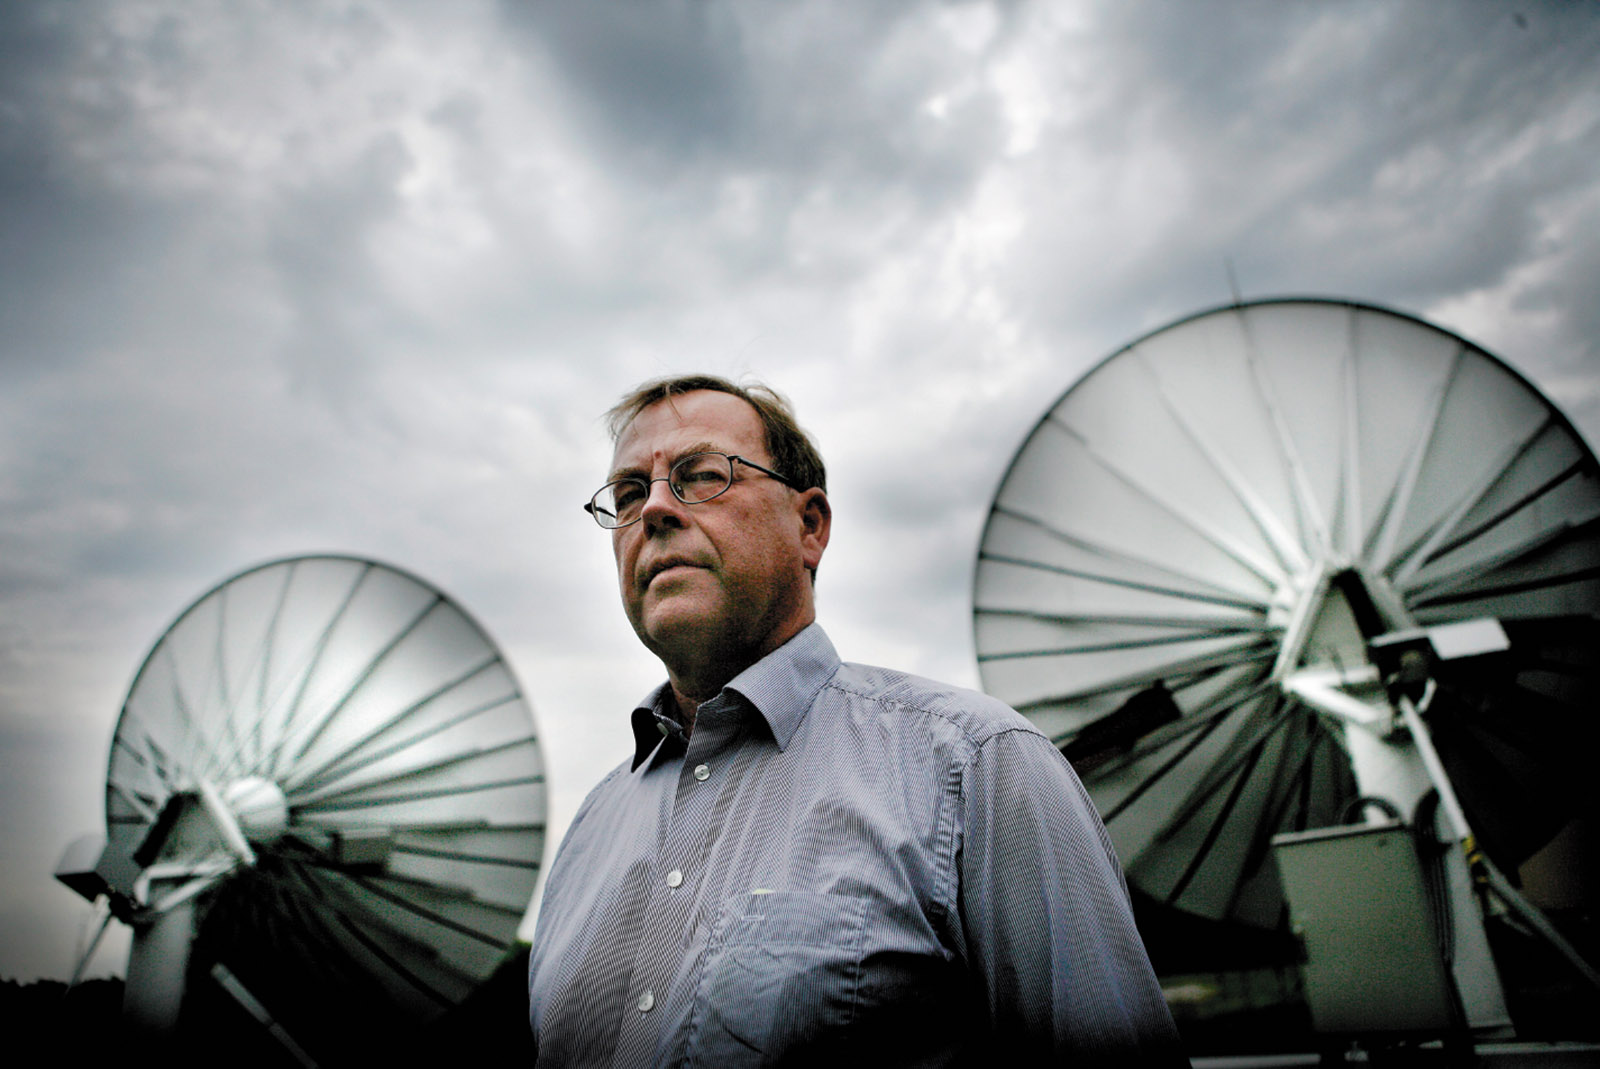 Ingvar Åkesson, director of Sweden's National Defense Radio Establishment (FRA) from 2003 to 2013. In April 2013, he participated in a secret three-day meeting with then NSA Director Keith Alexander in Fort Meade, Maryland, to discuss Sweden's growing importance to the NSA.